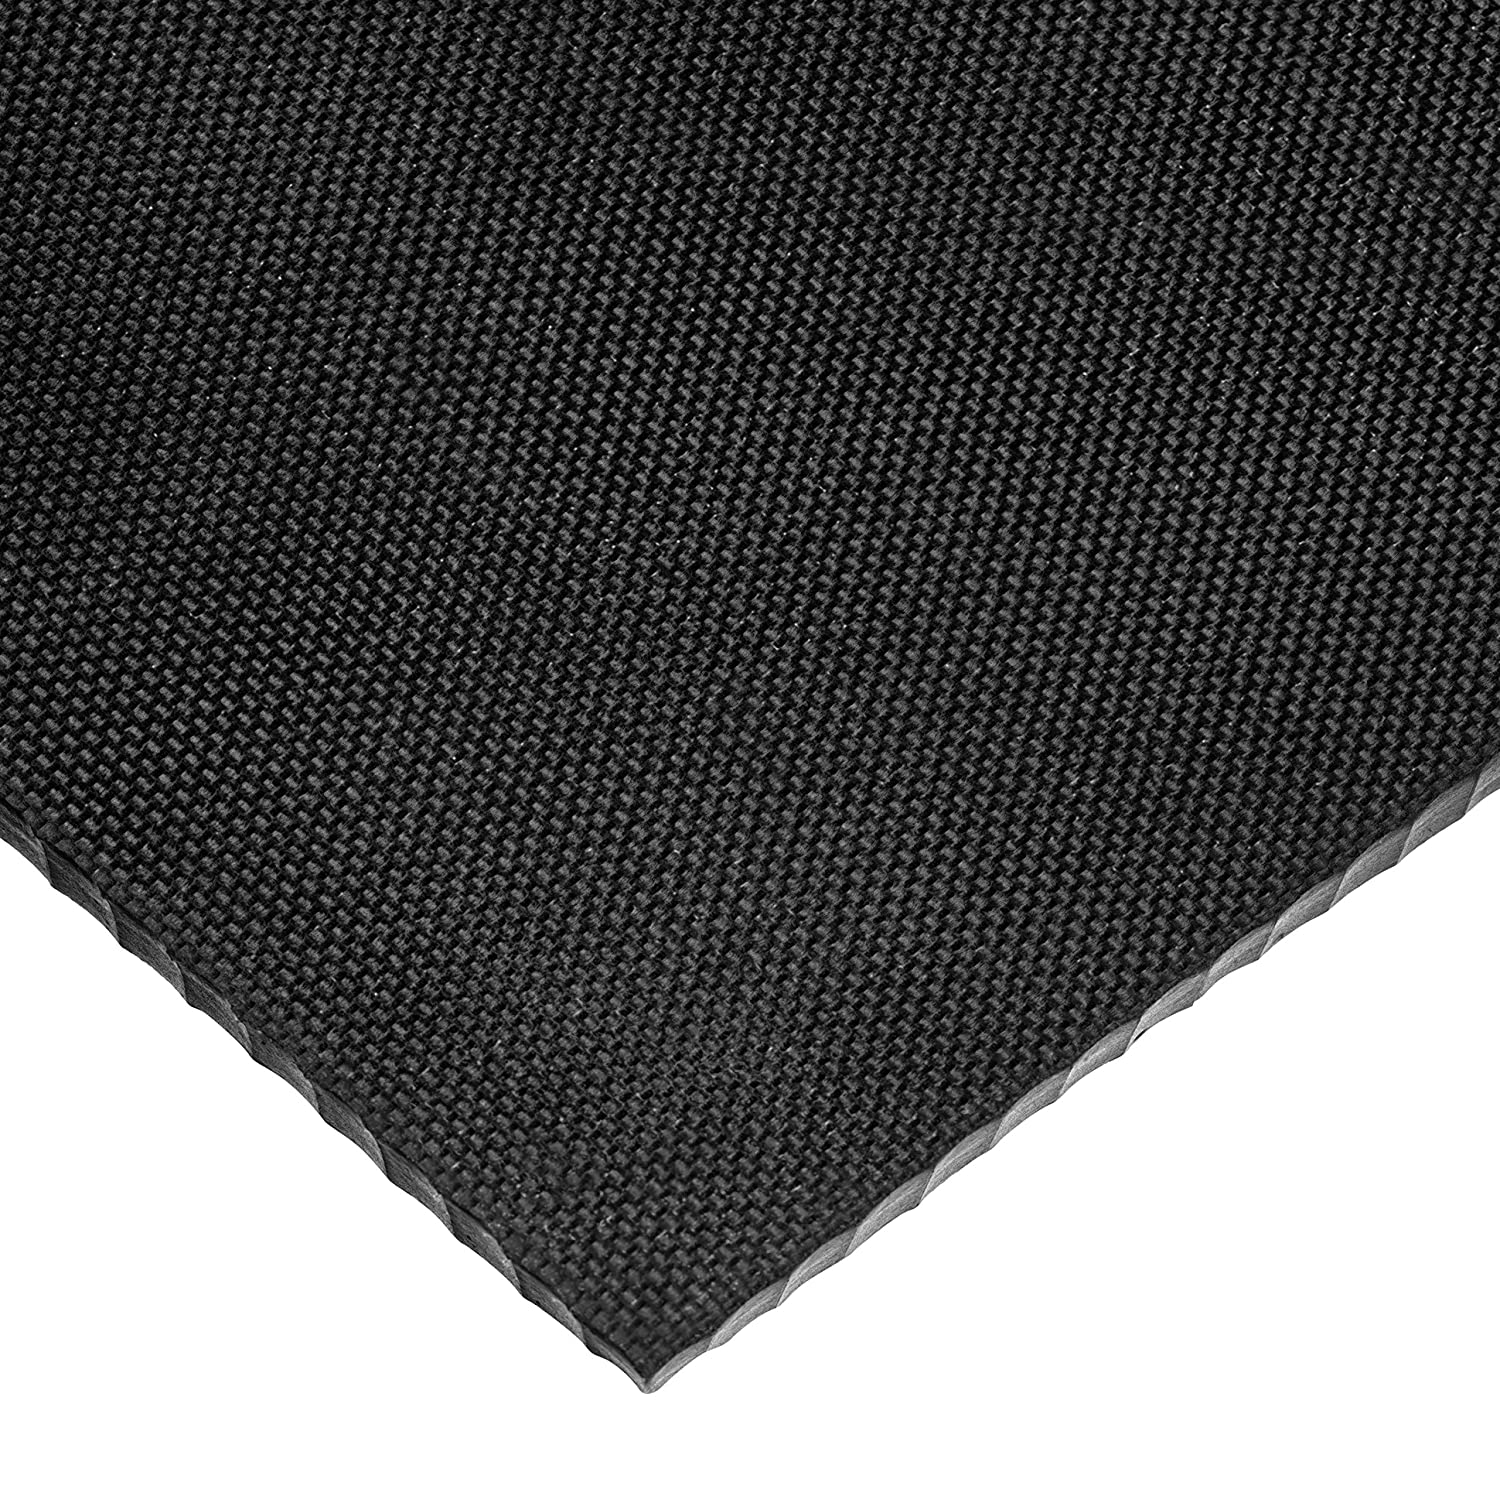 Textured Neoprene Rubber Roll No Adhesive Thick 32